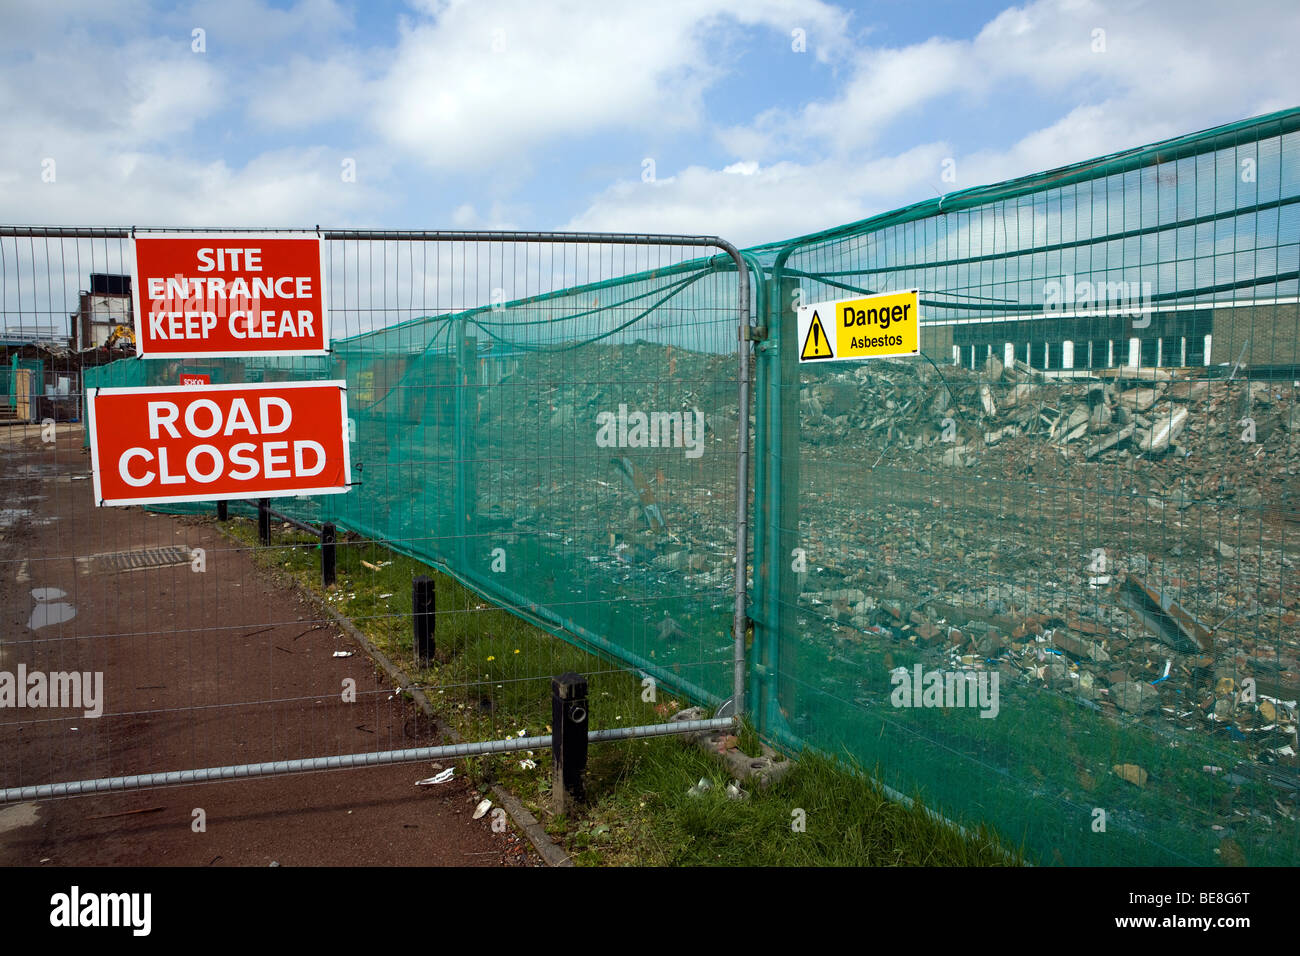 A sign warning of asbestos on a fenced off school demolition site, UK - Stock Image